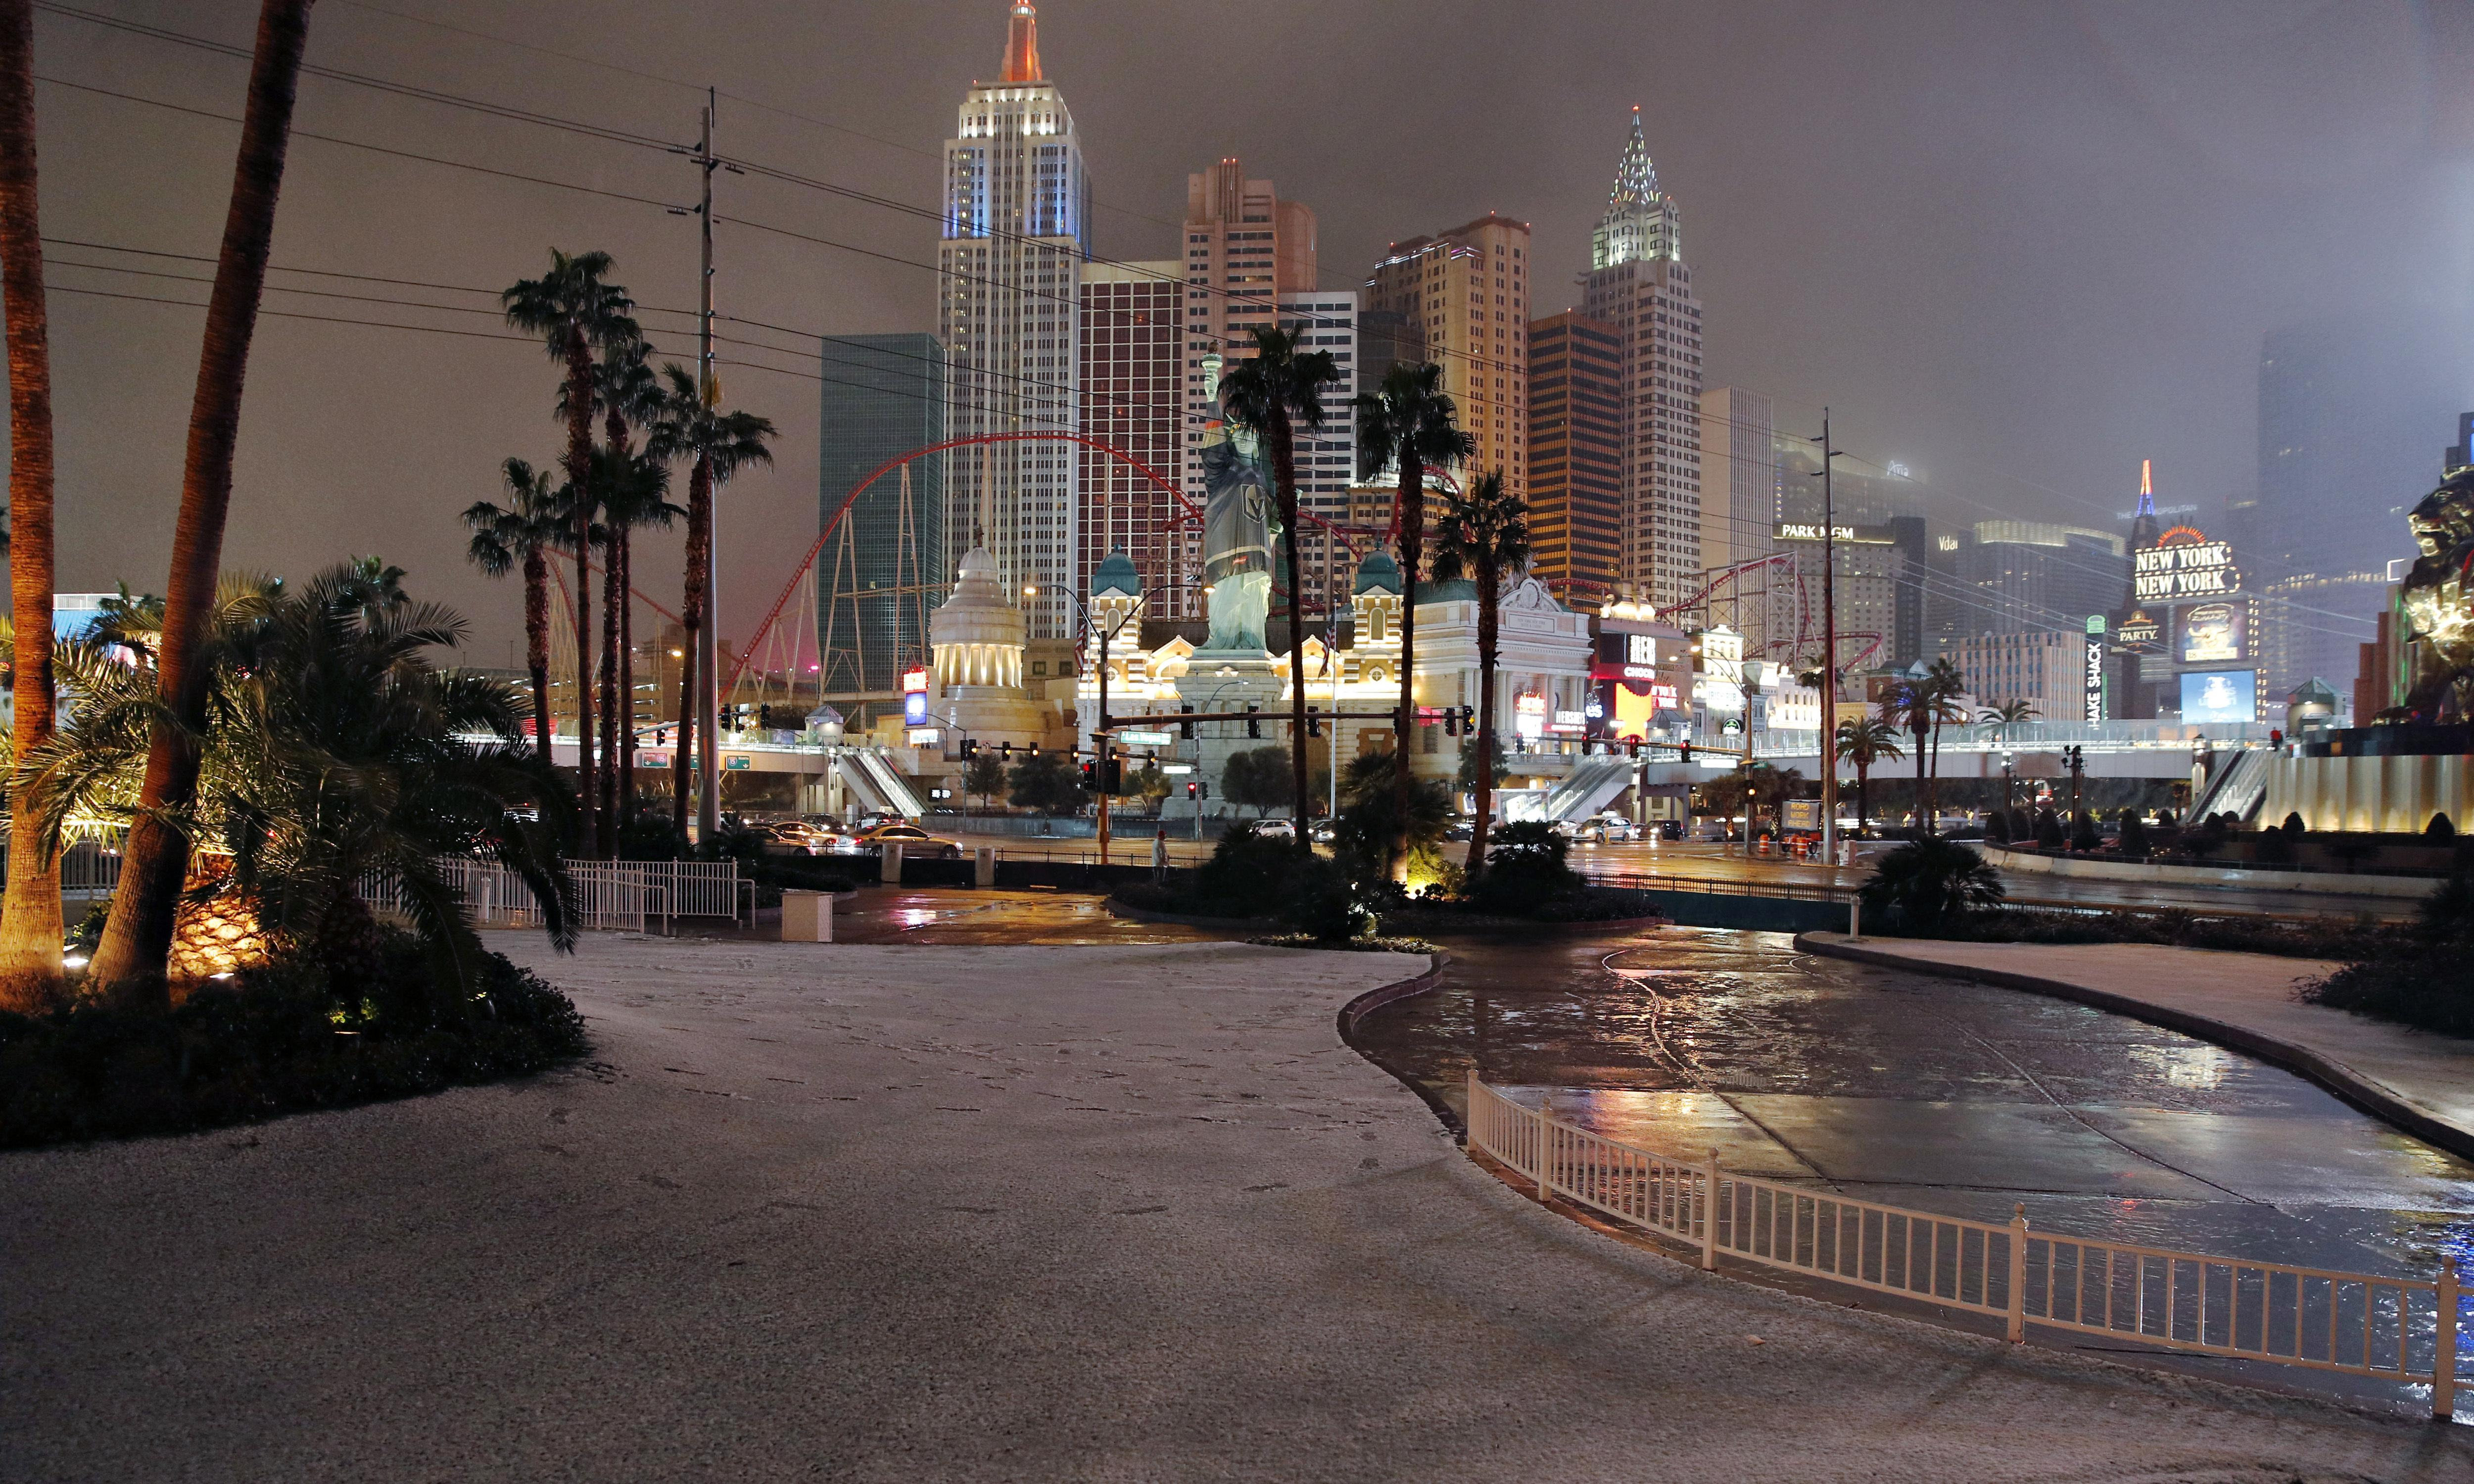 Las Vegas sees first significant snowfall since 1937